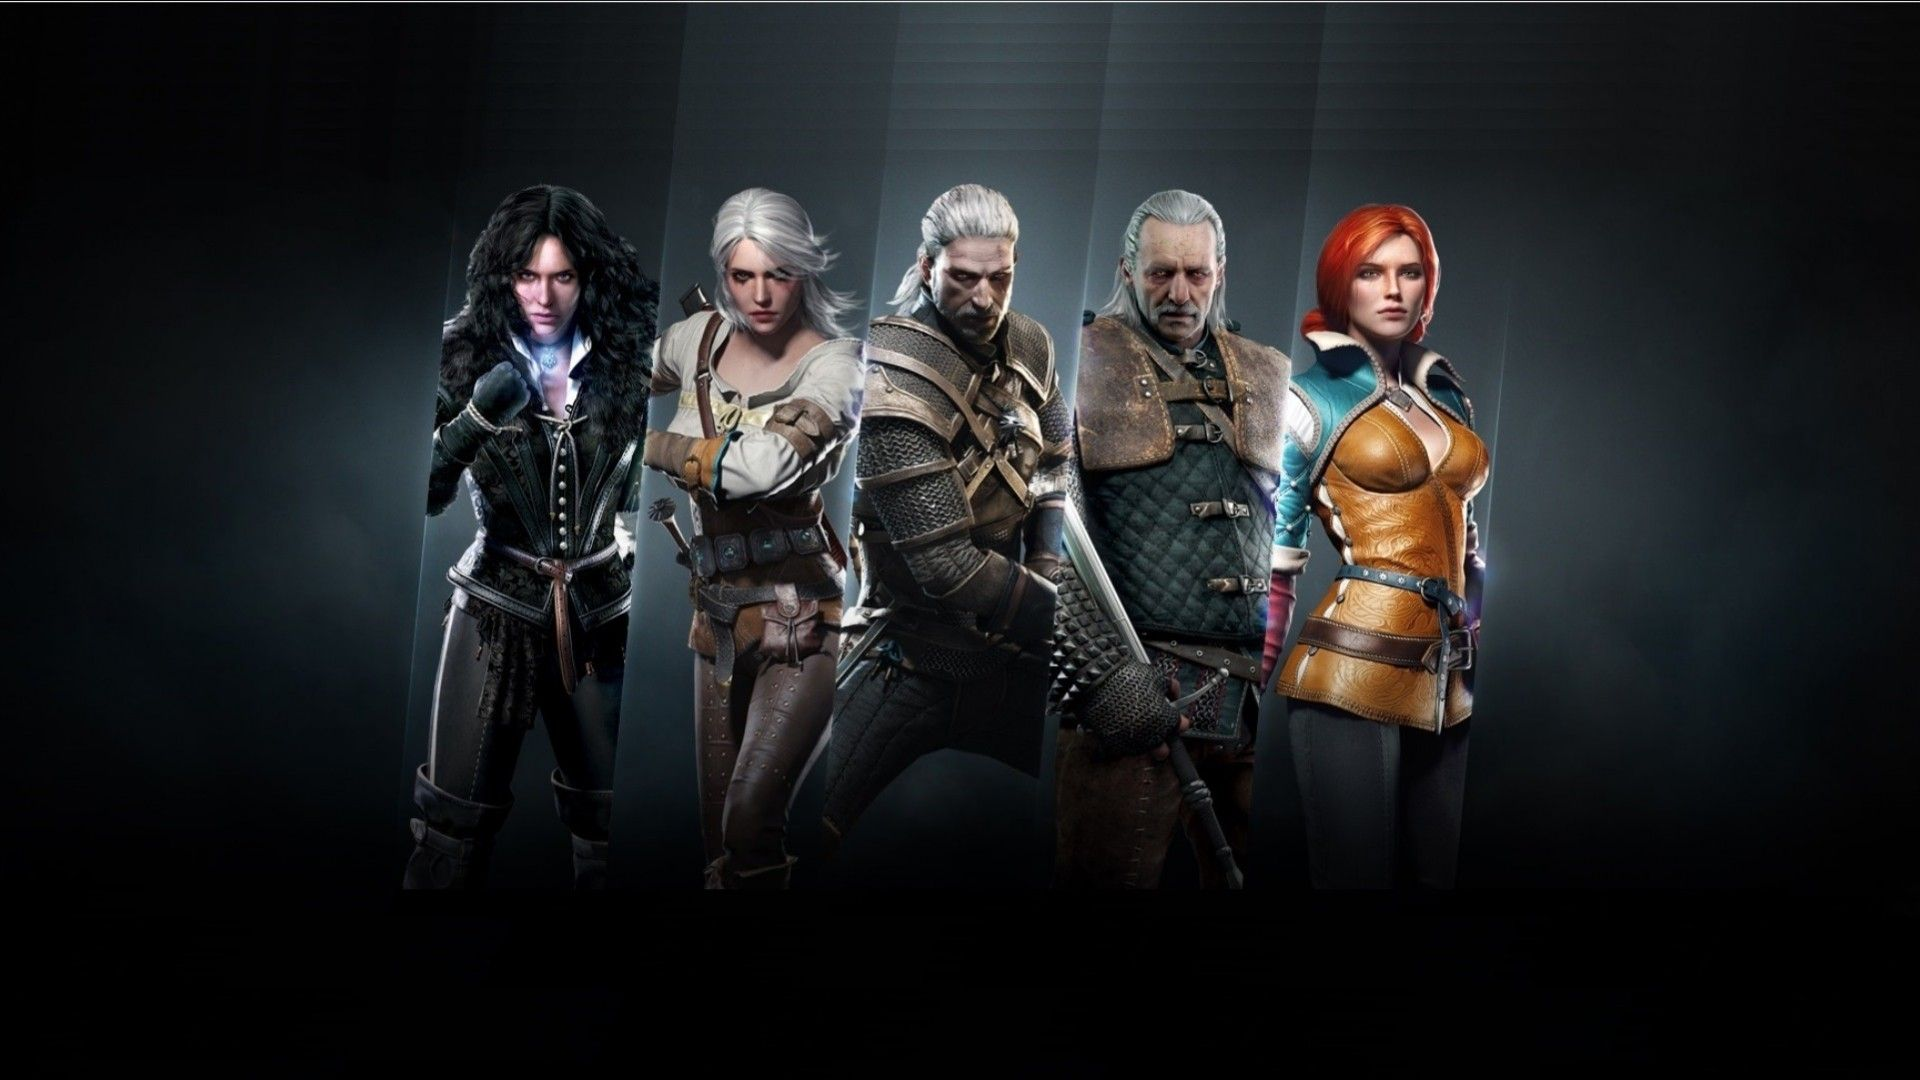 Wallpaper the witcher 3: wild hunt main characters awesome 1920x1080